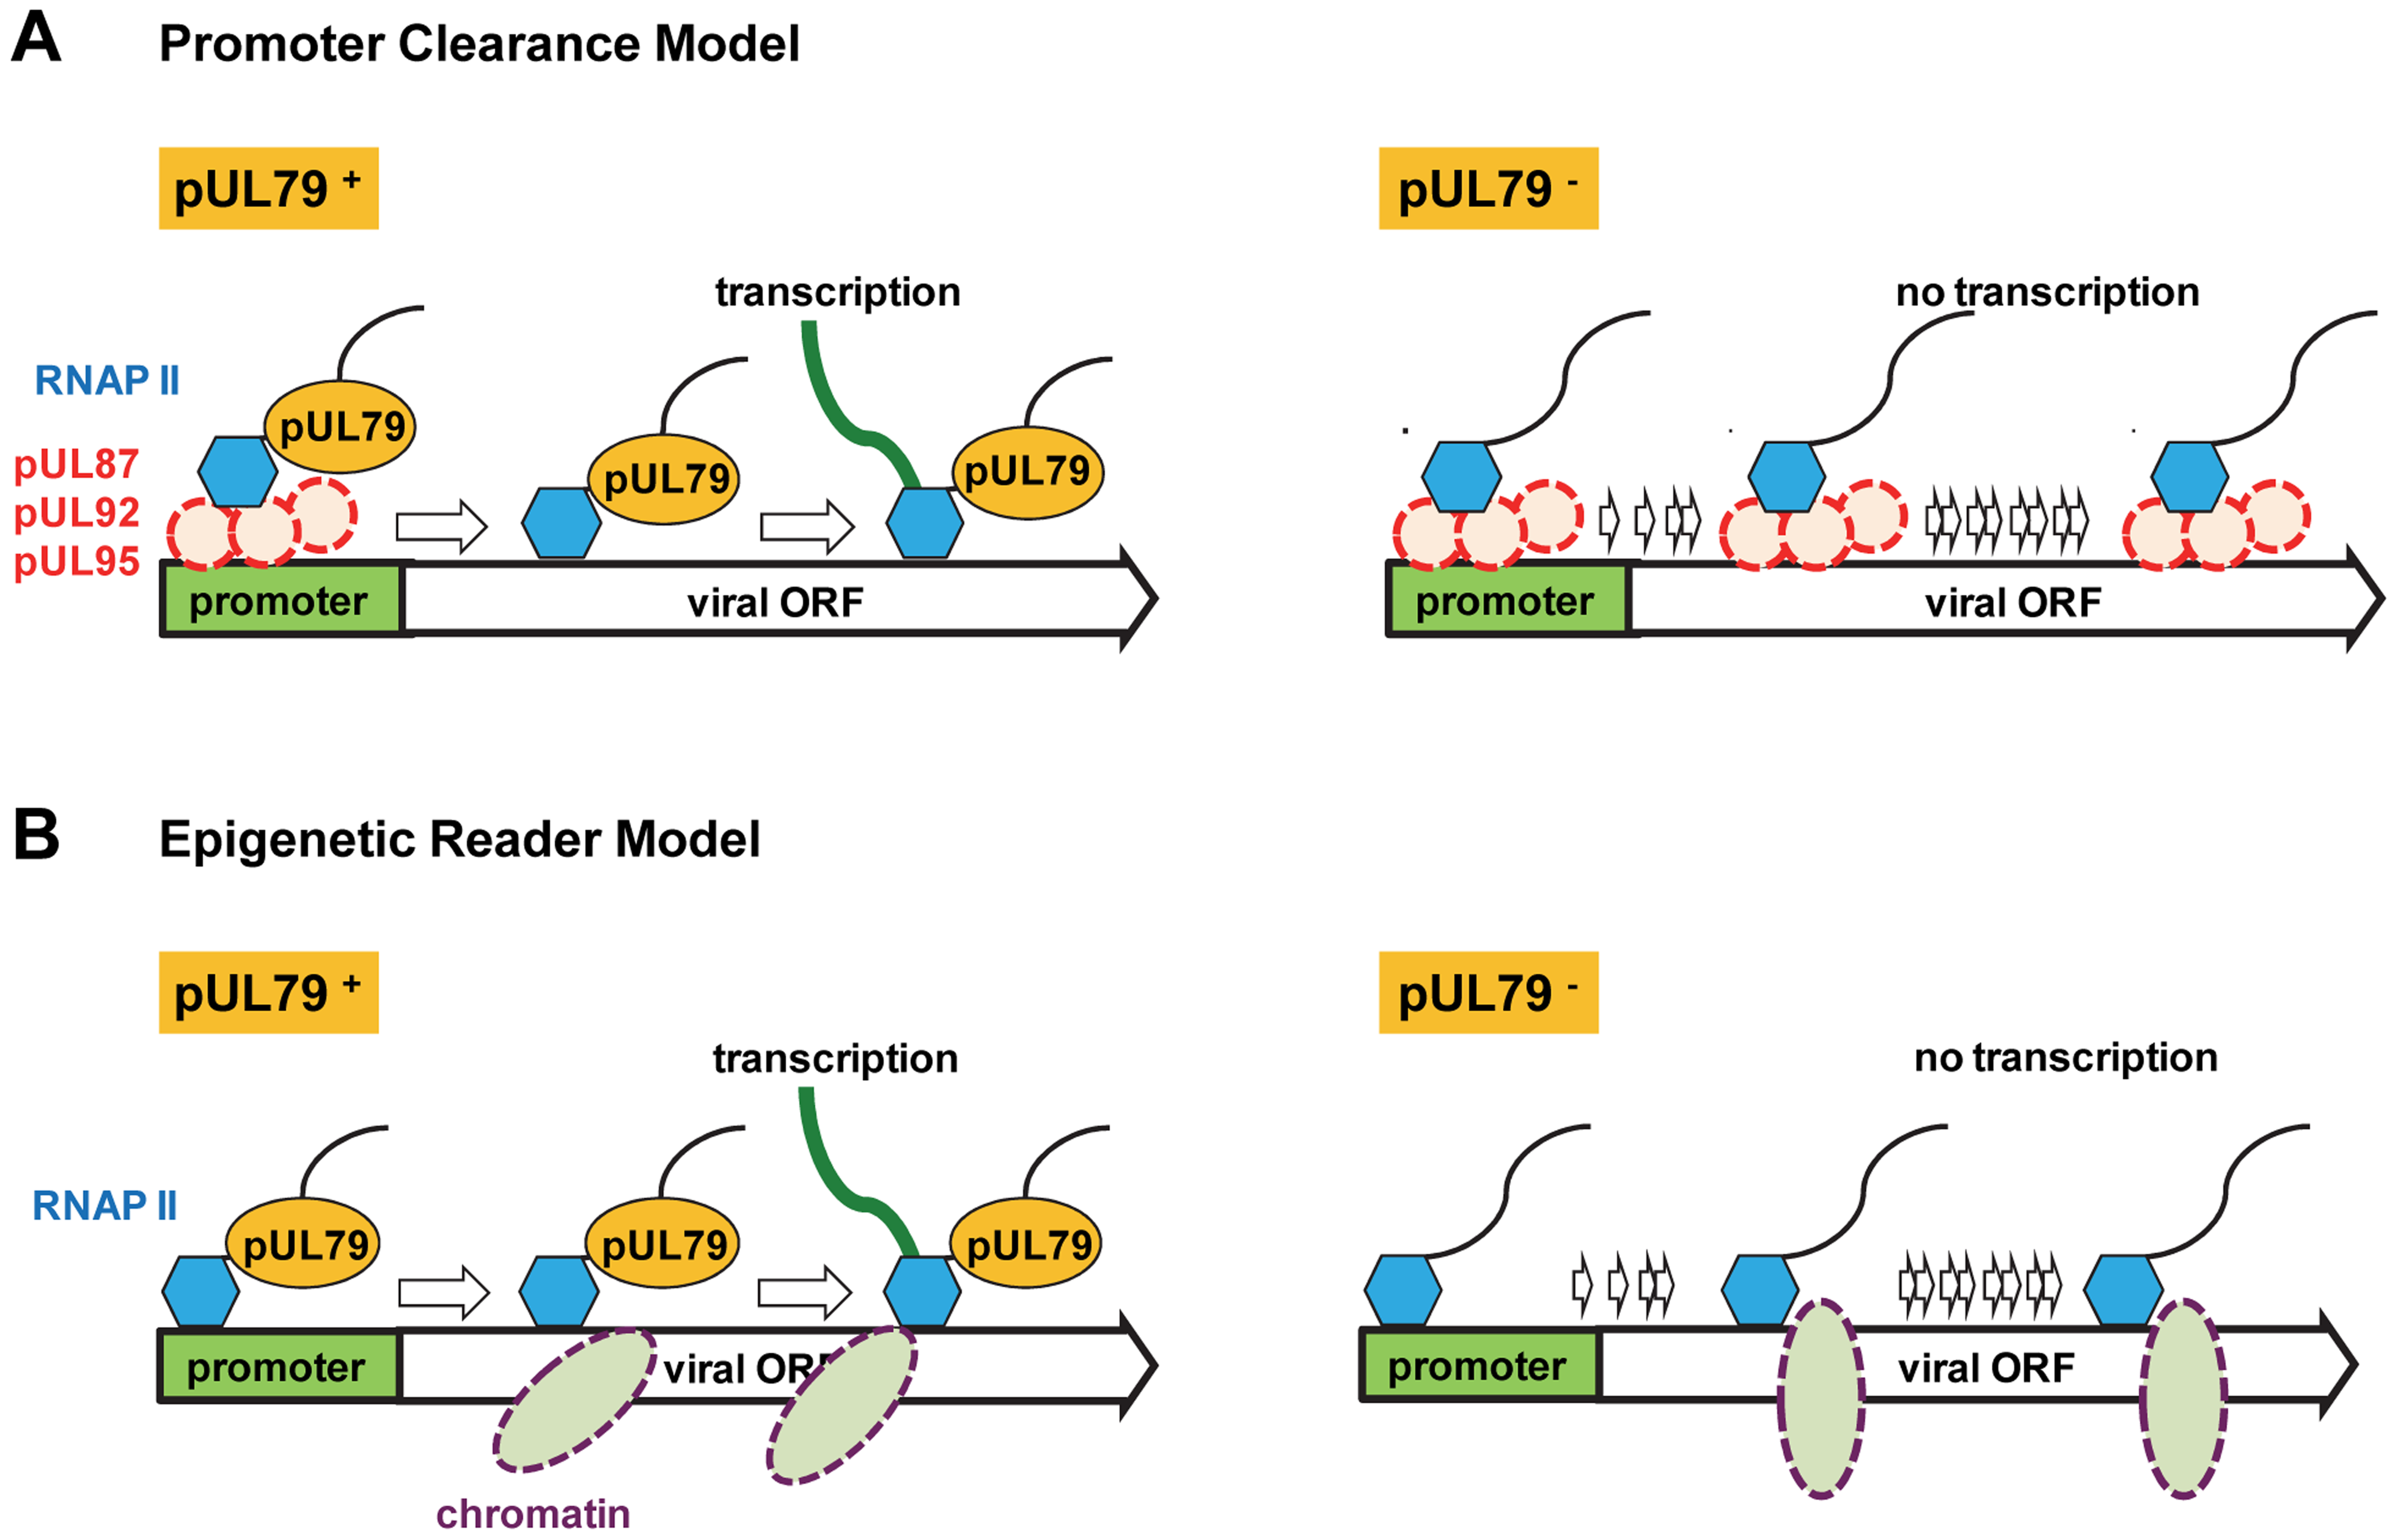 Potential role of pUL79 in RNAP II-mediated viral transcription.